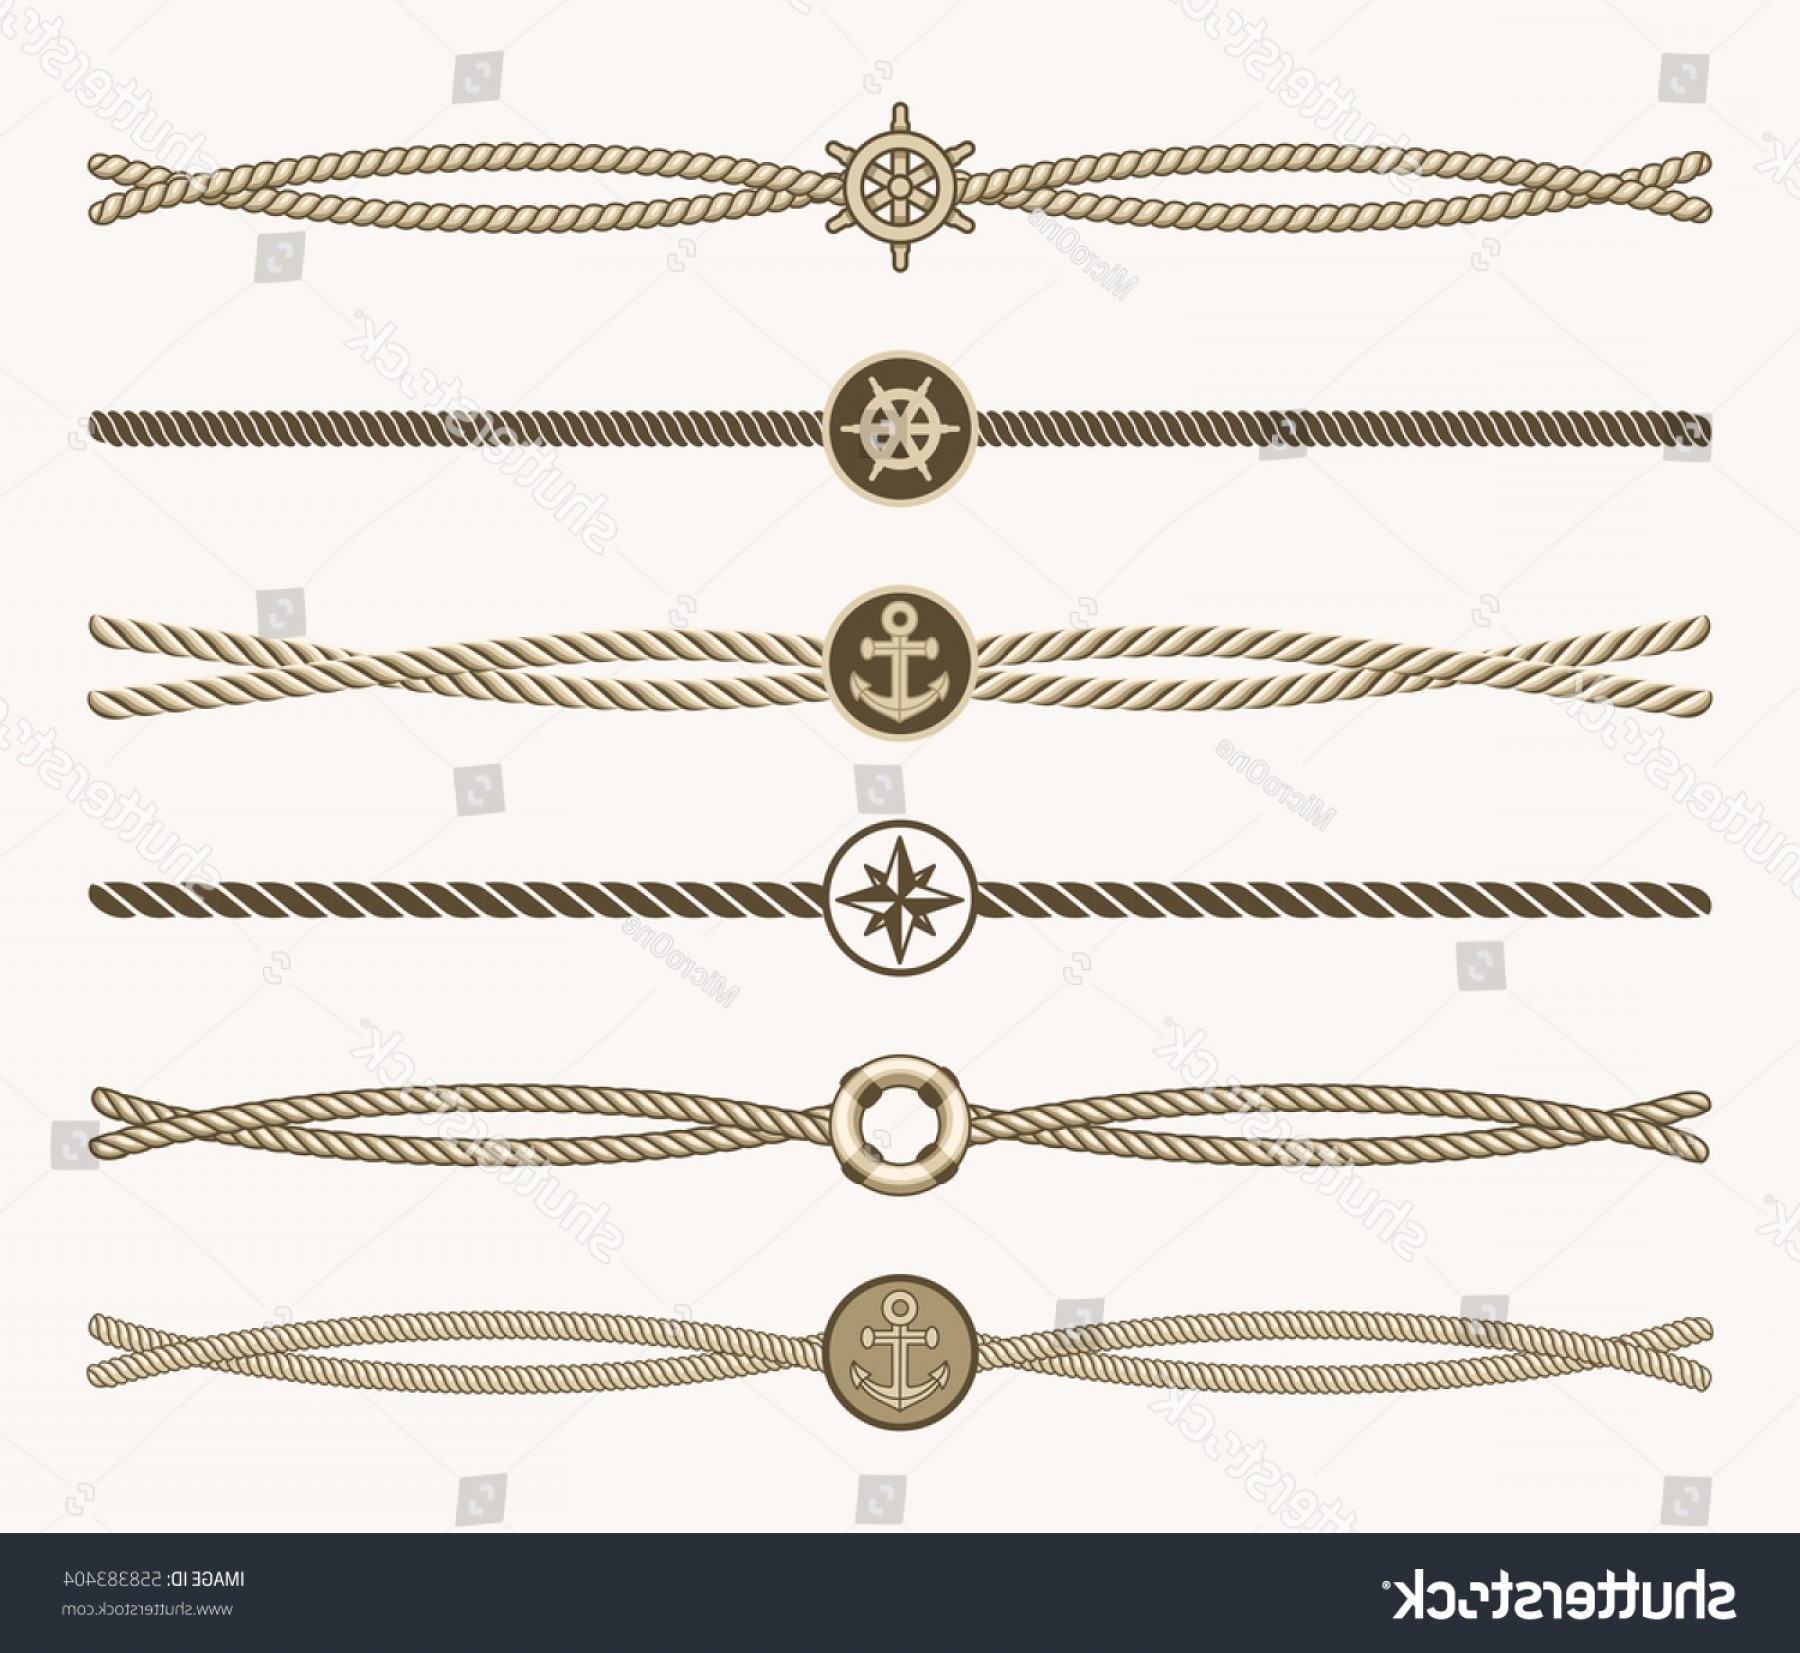 Design Vector Image Of Rope: Nautical Vintage Rope Vector Dividers Design